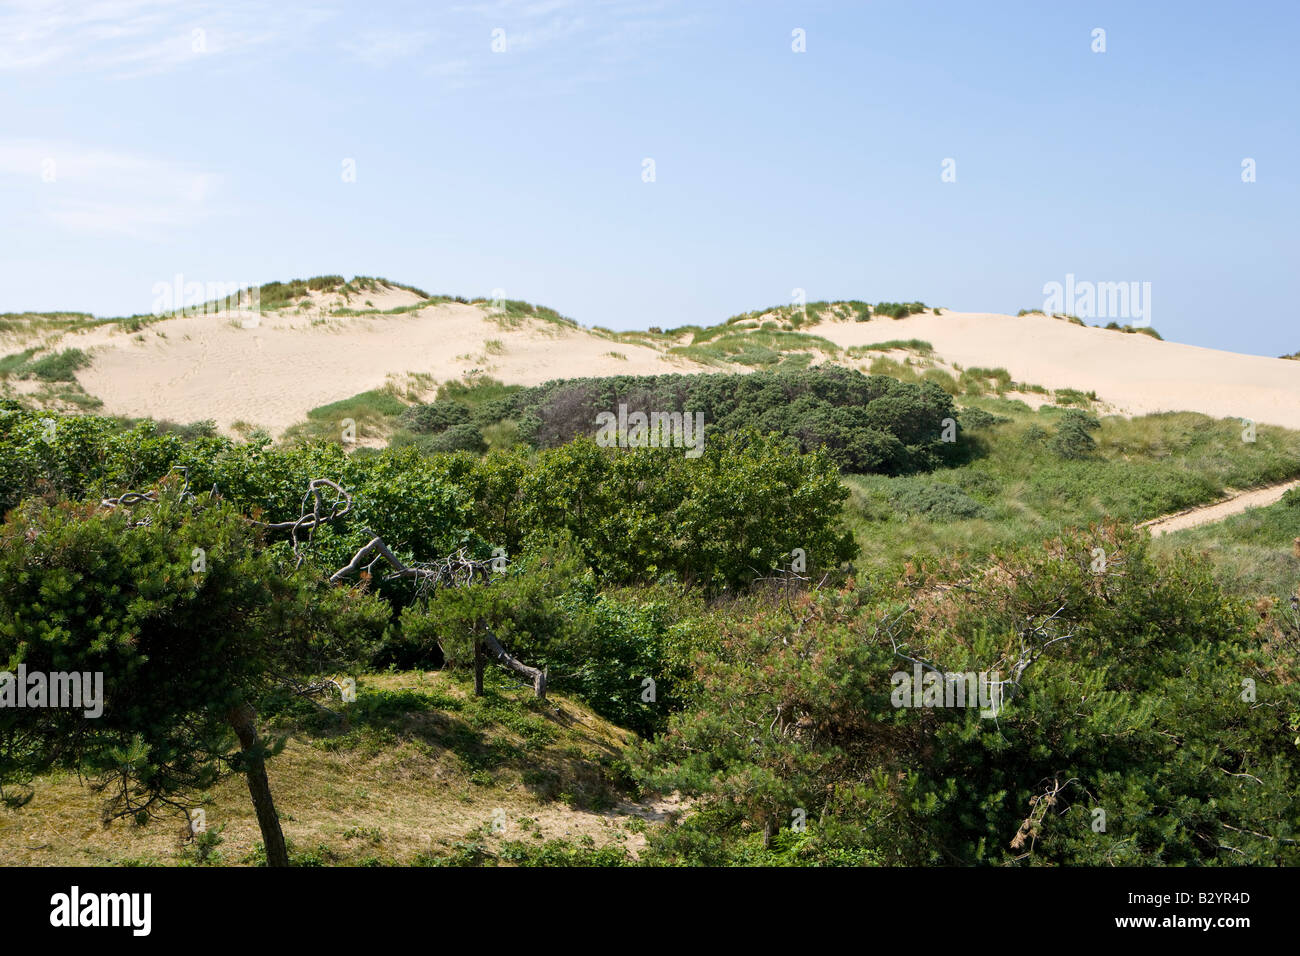 Large mobile dune system on north west coast of England. Formby - Stock Image